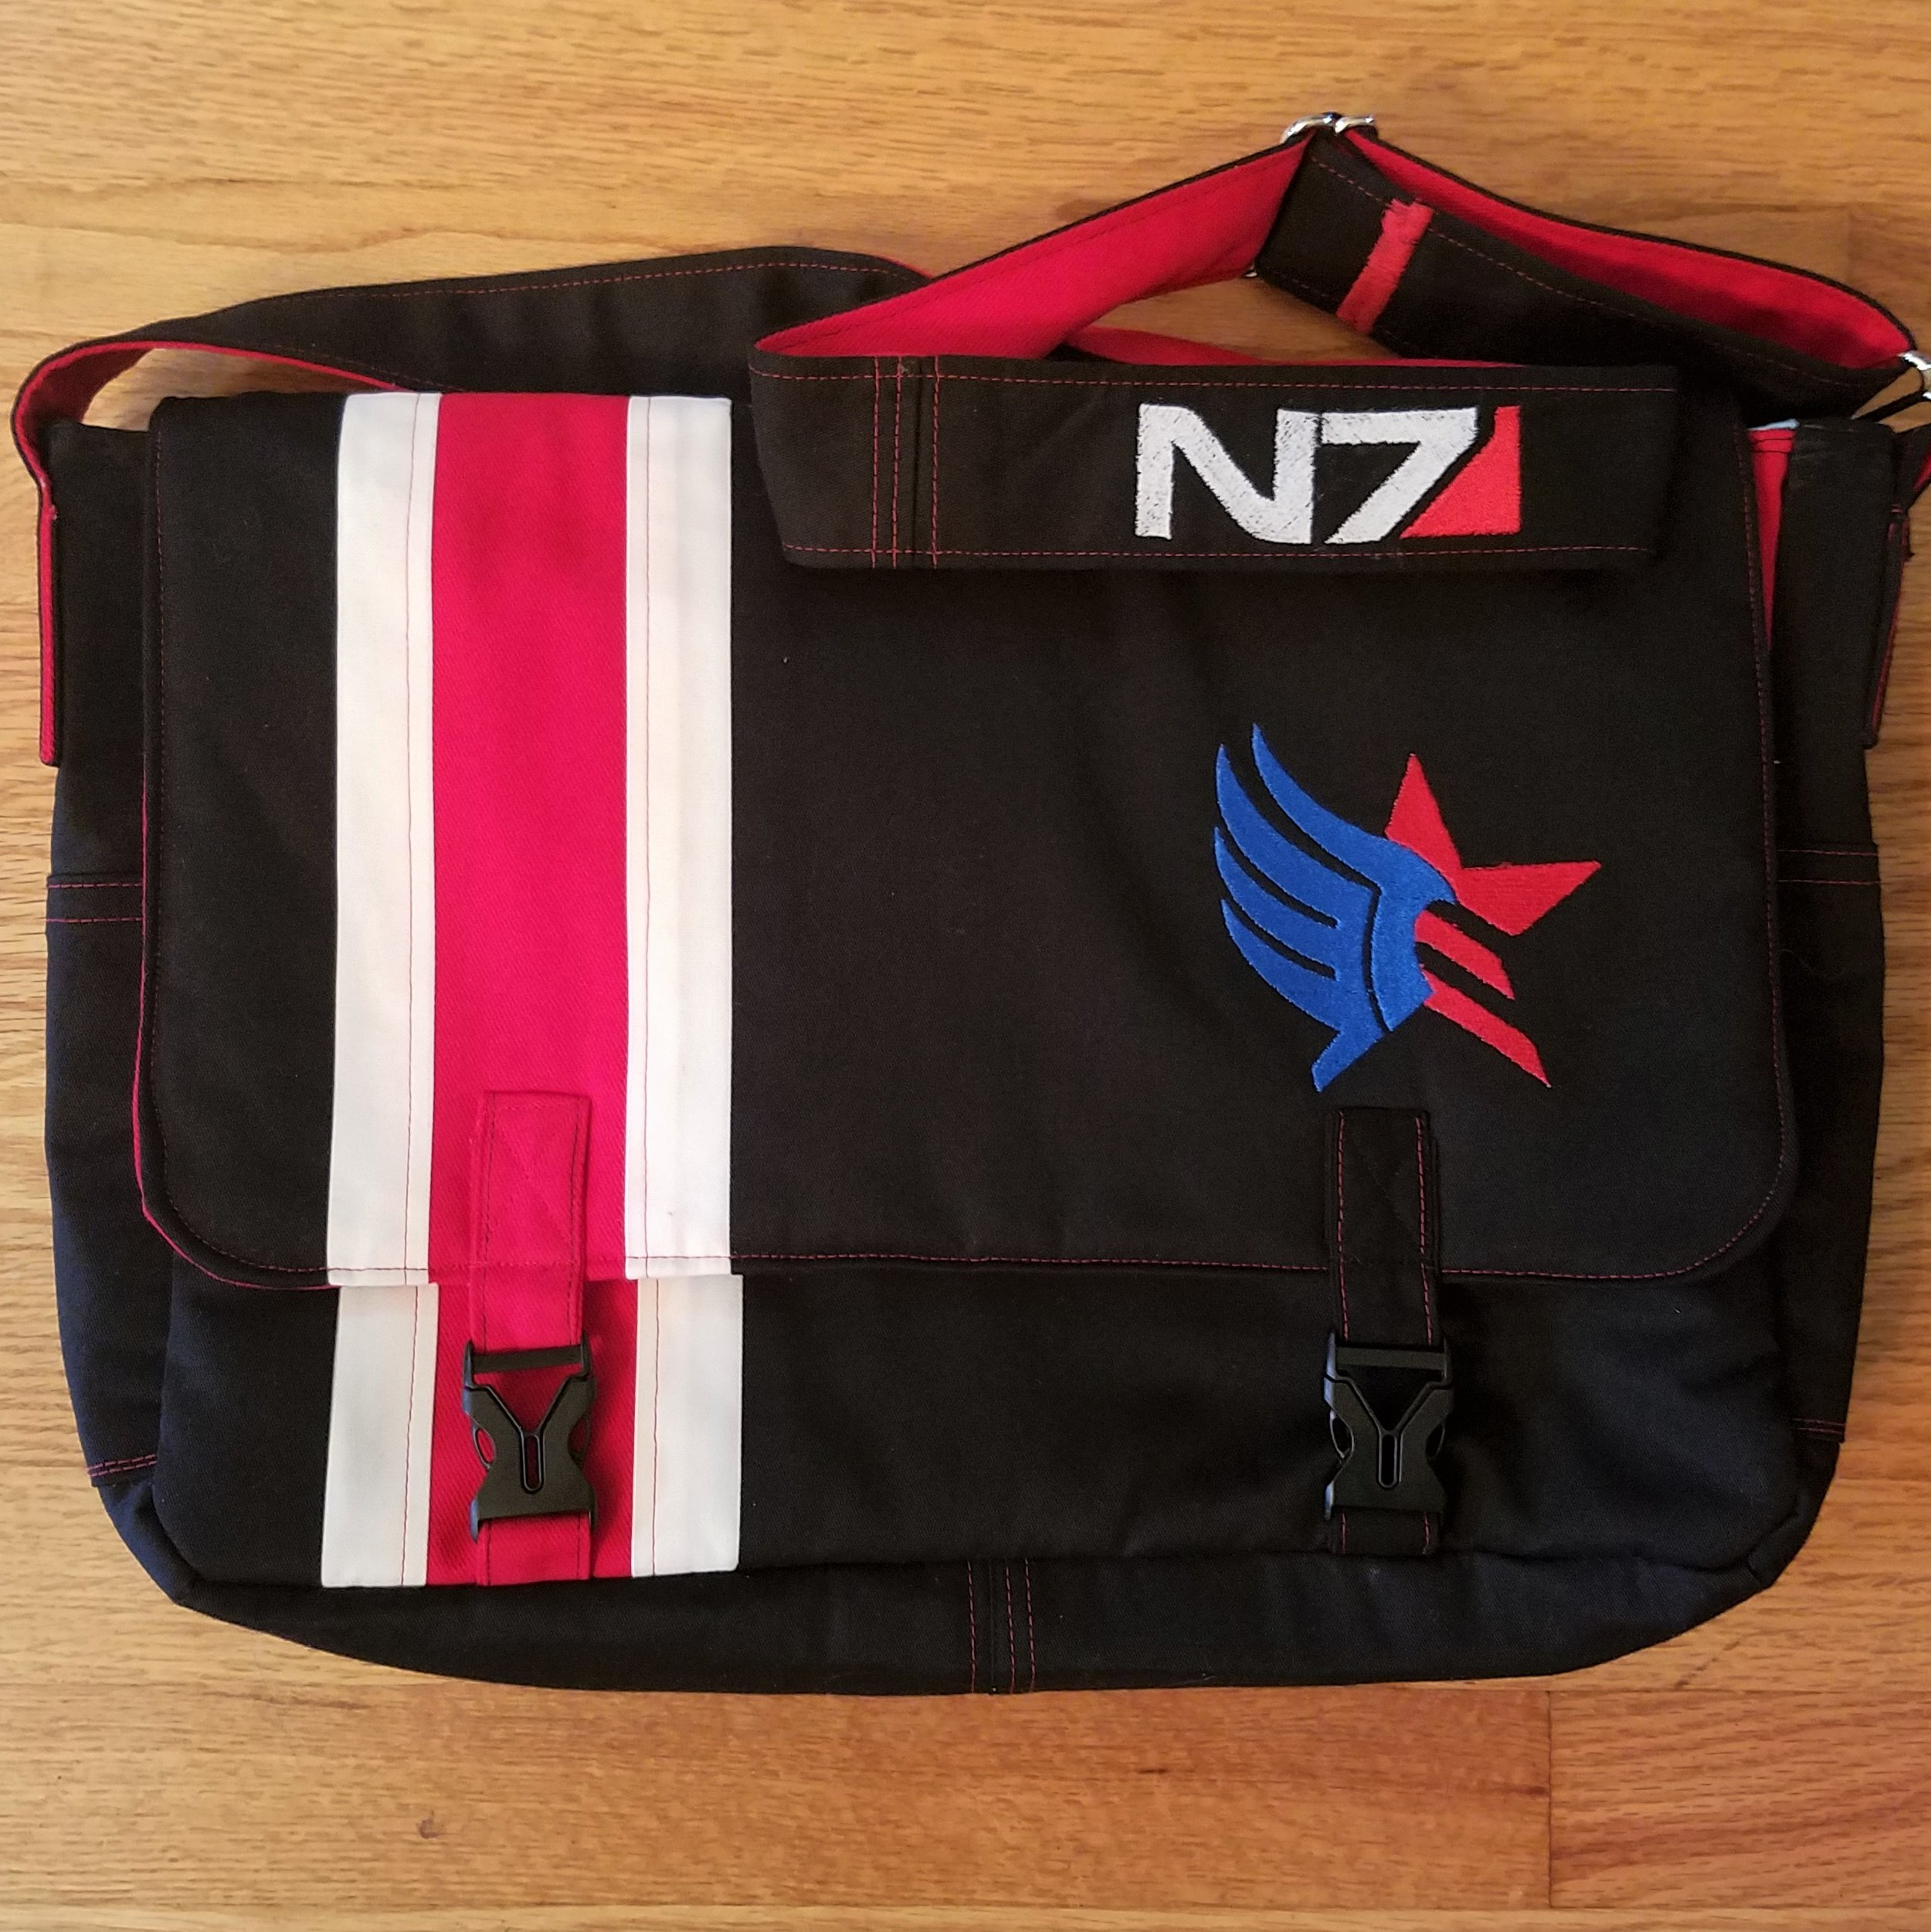 Tock Custom - Mass Effect Bag